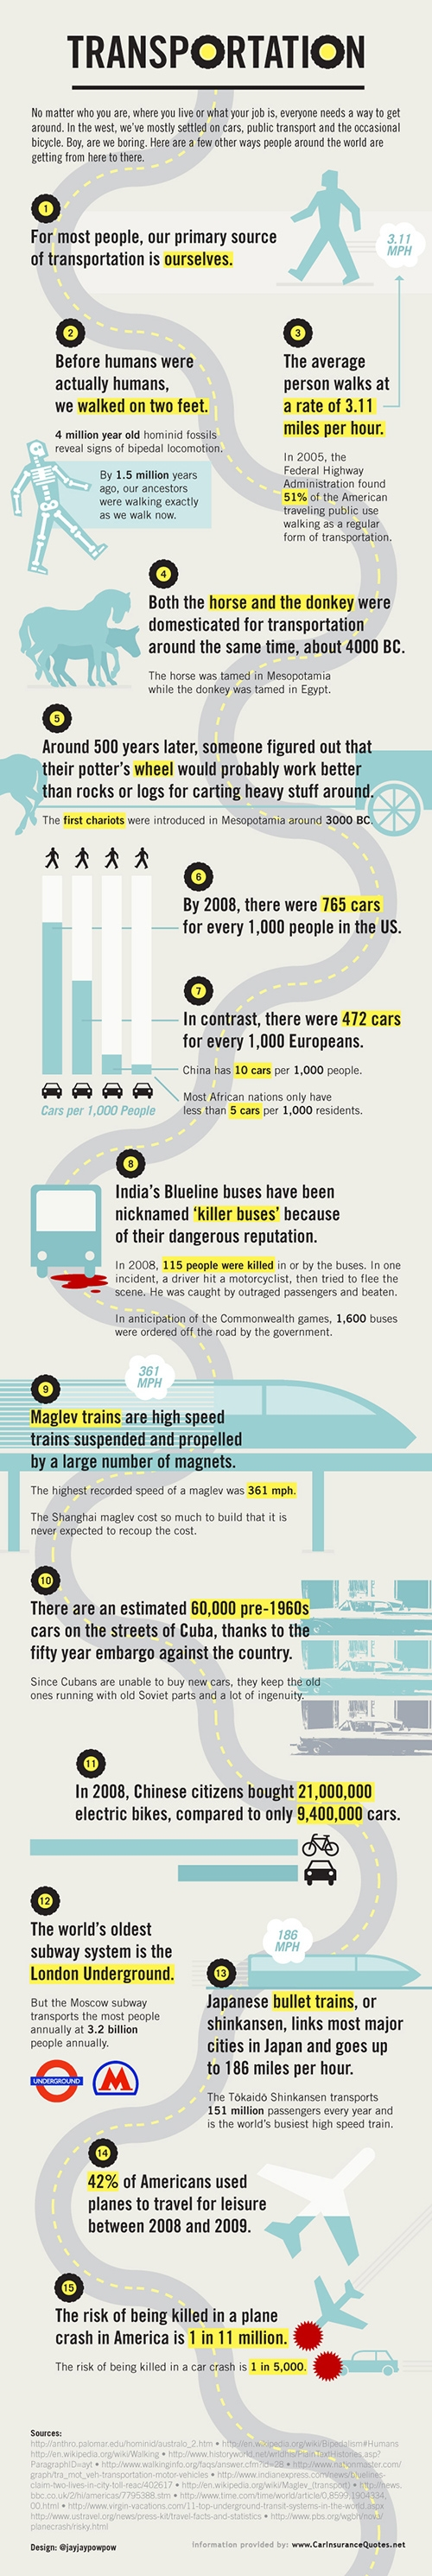 15 facts about transportation